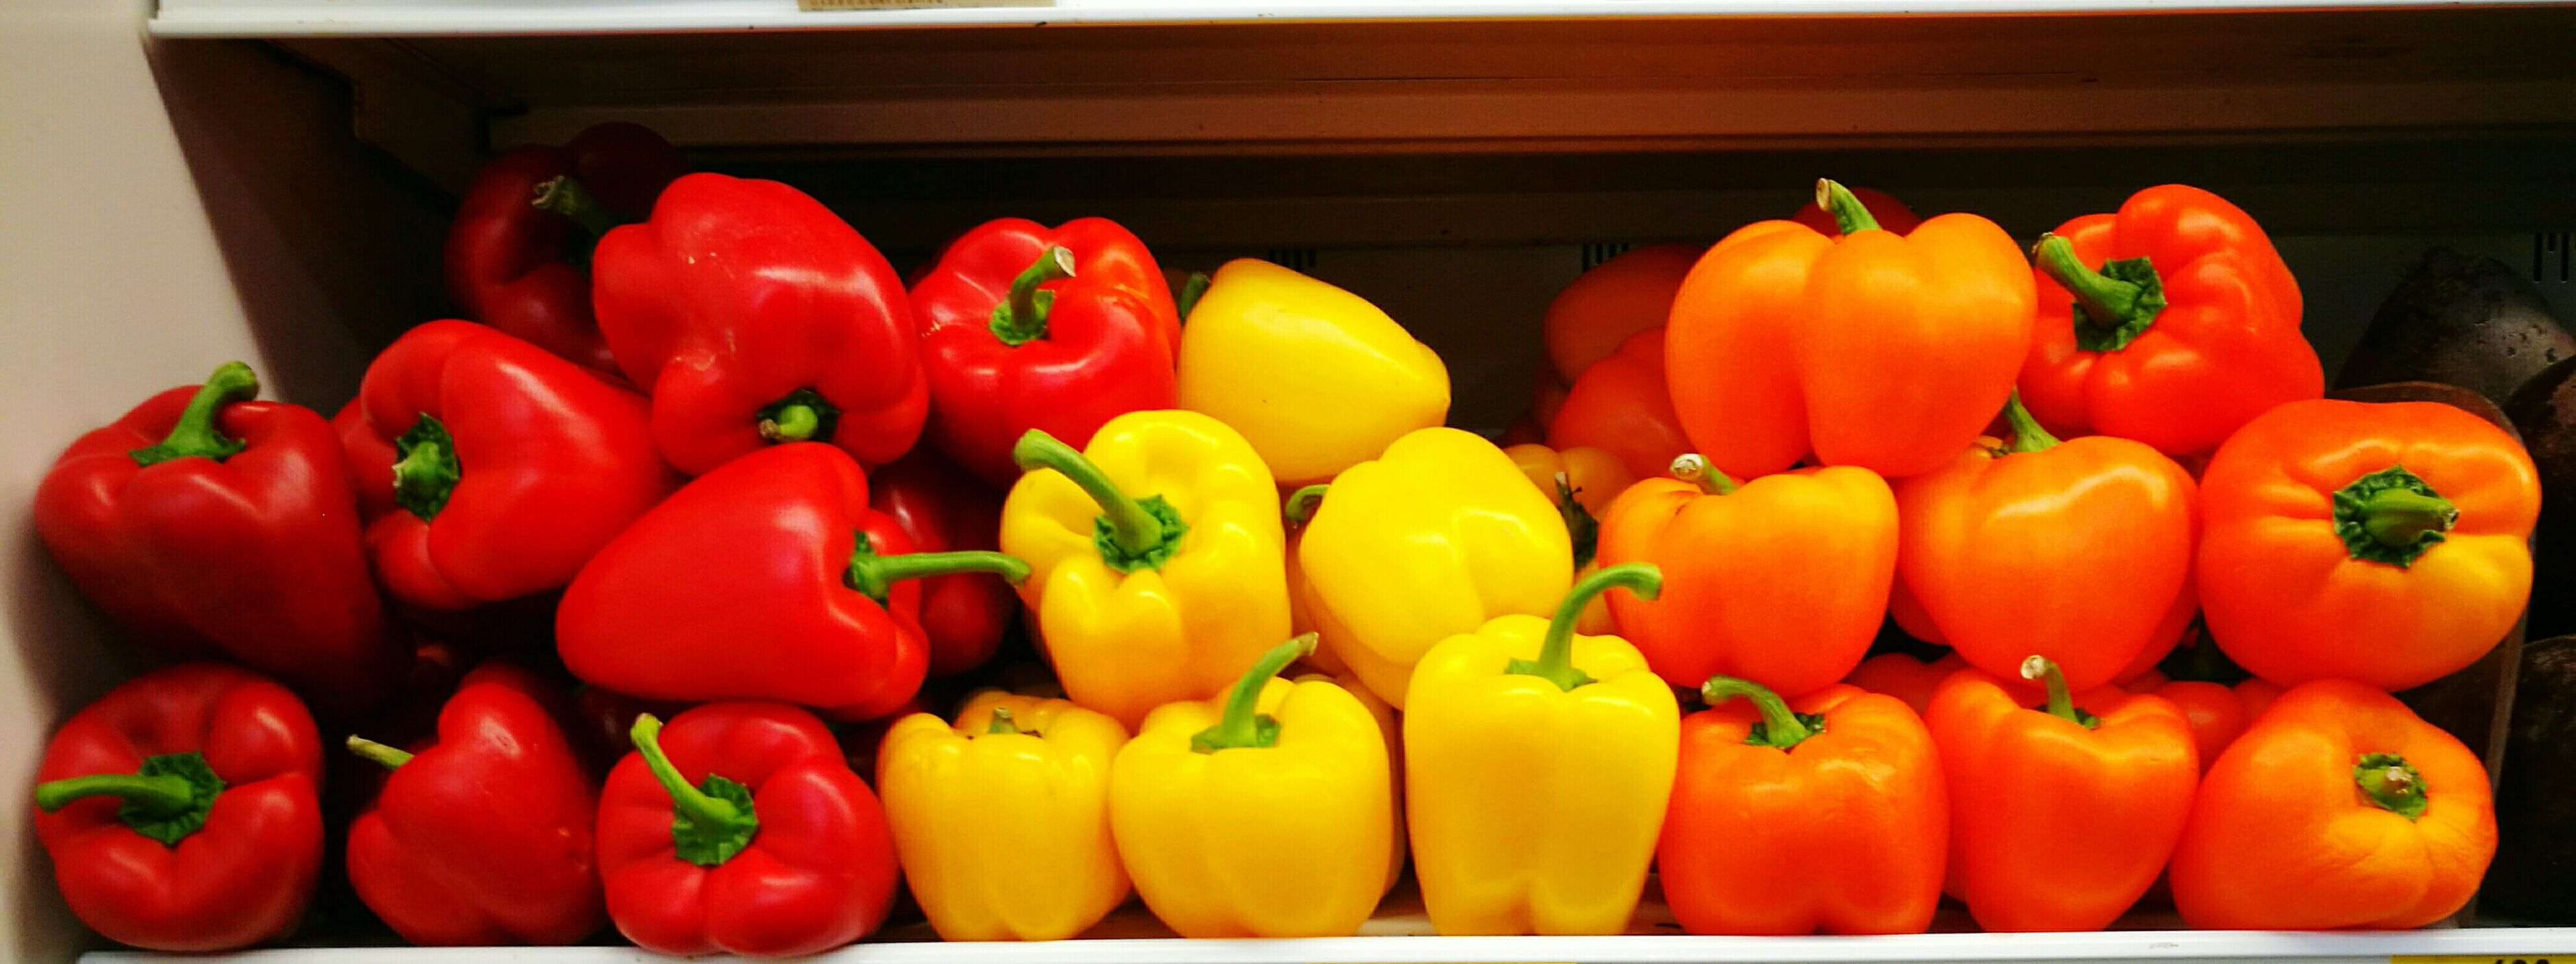 red, freshness, healthy eating, vegetable, food and drink, yellow, bell pepper, red bell pepper, close-up, food, fruit, no people, large group of objects, indoors, day